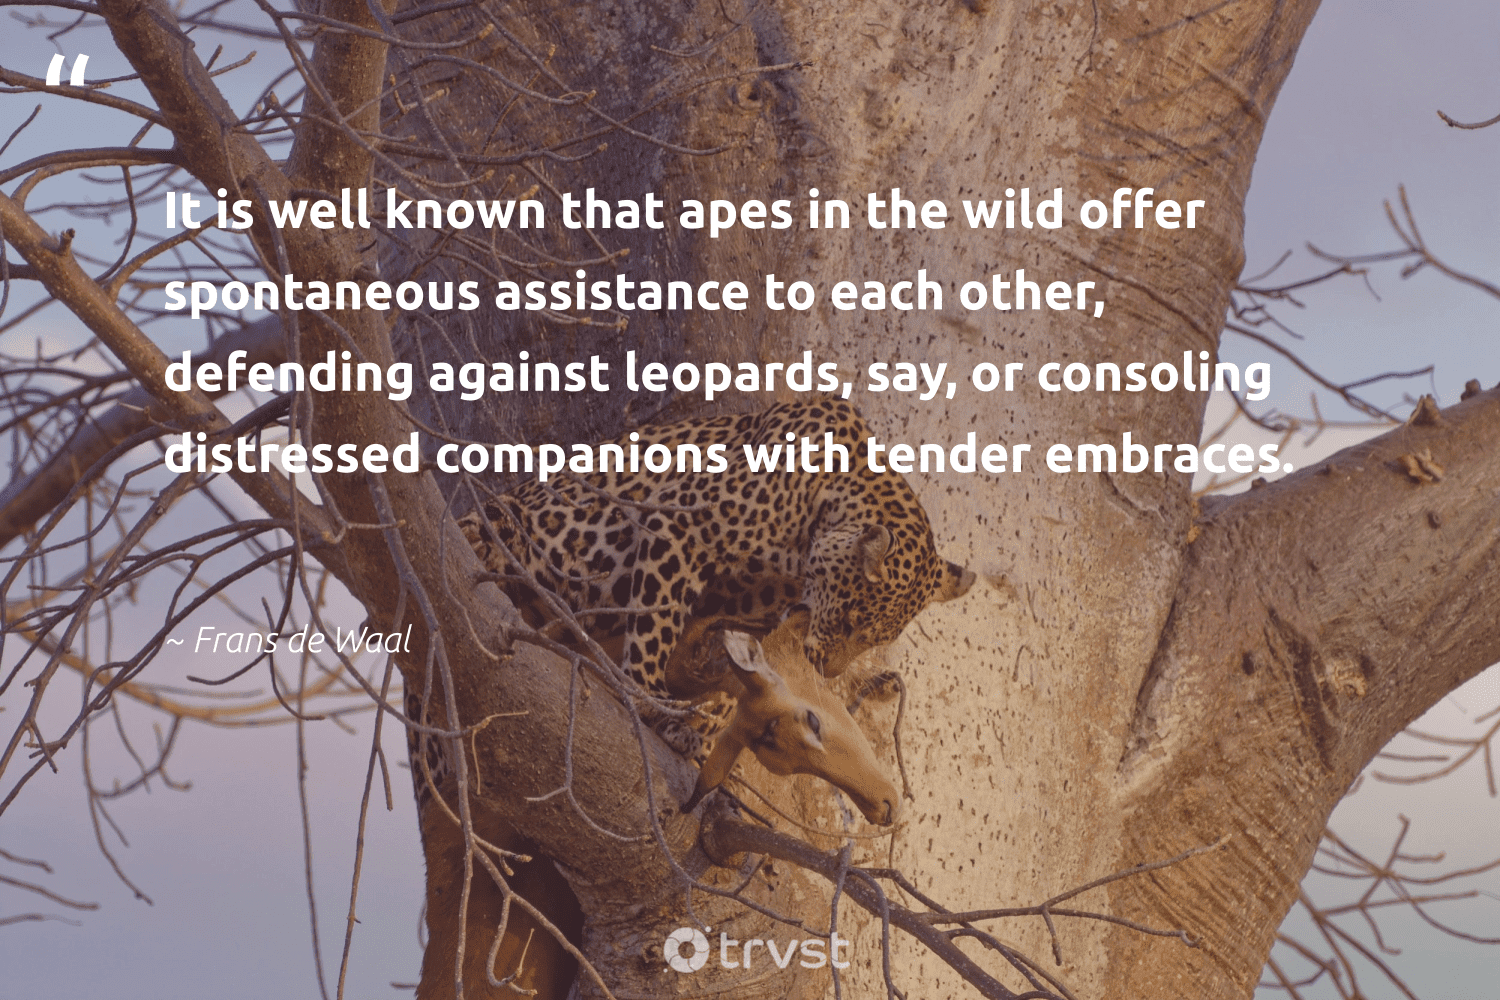 """""""It is well known that apes in the wild offer spontaneous assistance to each other, defending against leopards, say, or consoling distressed companions with tender embraces.""""  - Frans de Waal #trvst #quotes #leopards #wild #big5 #bethechange #wildlifeprotection #ecoconscious #majesticwildlife #impact #wildlife #changetheworld"""